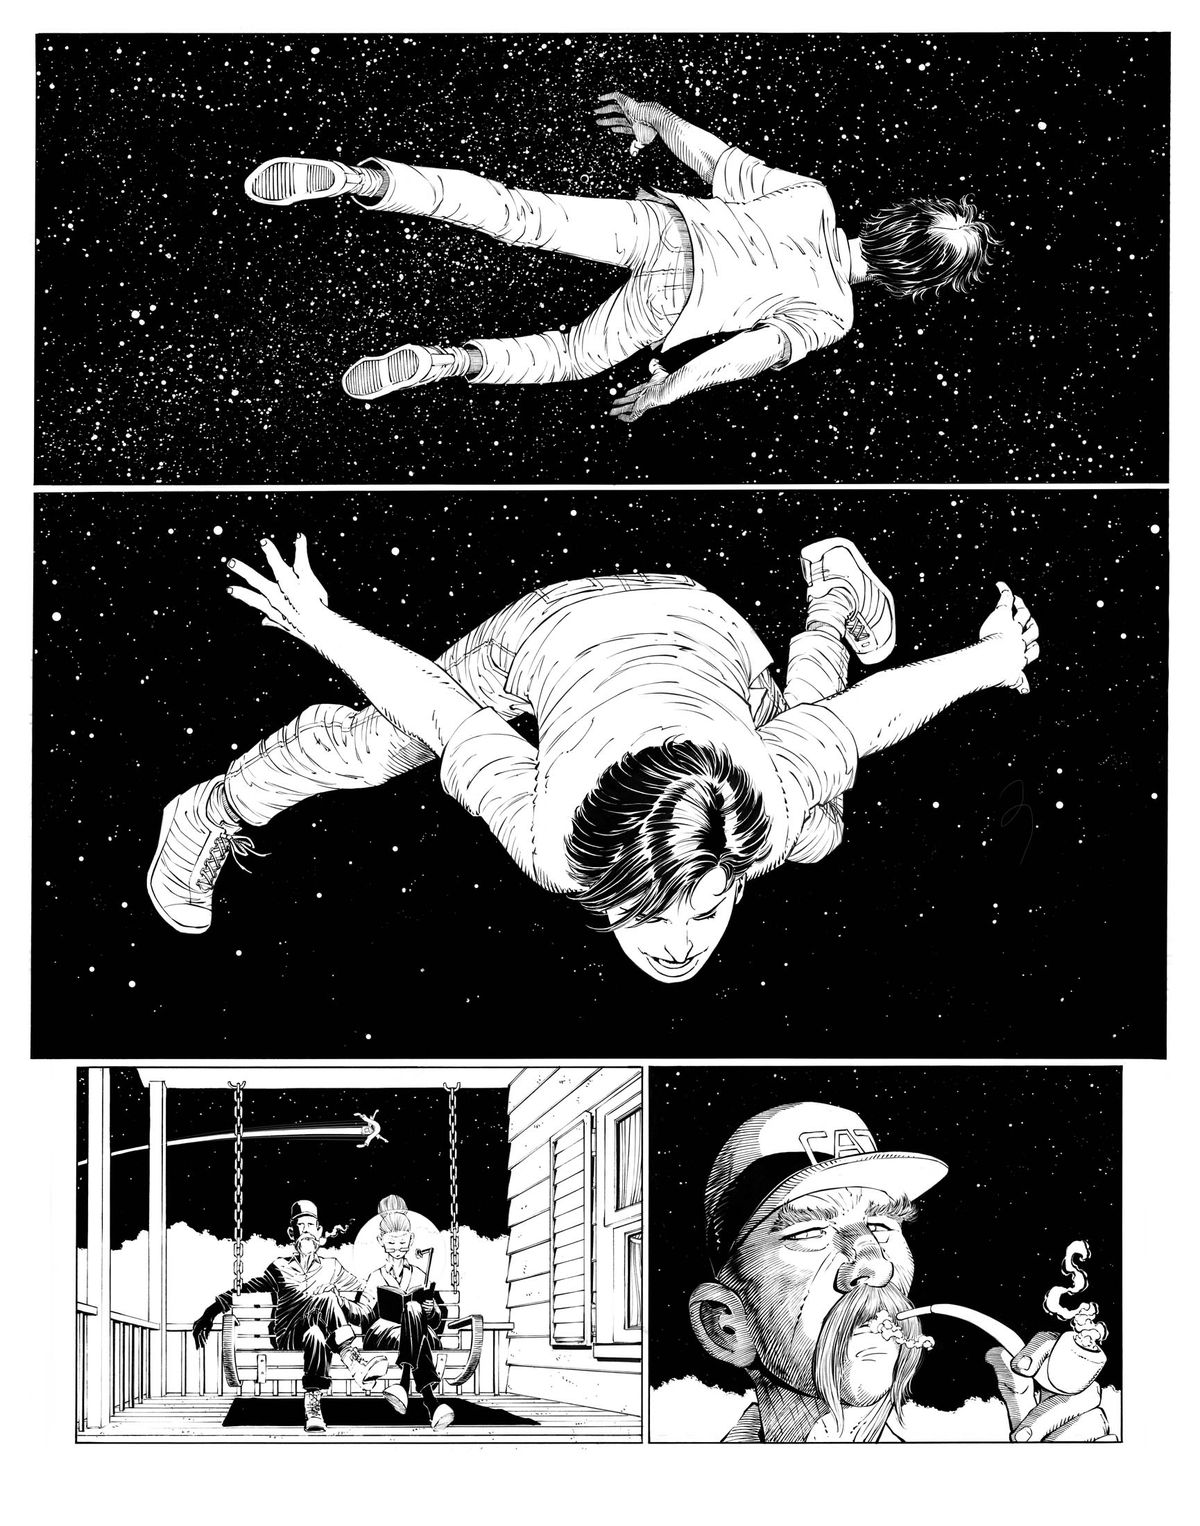 An inked page of Clark Kent flying from Superman: Year One #1, DC Comics (2019).